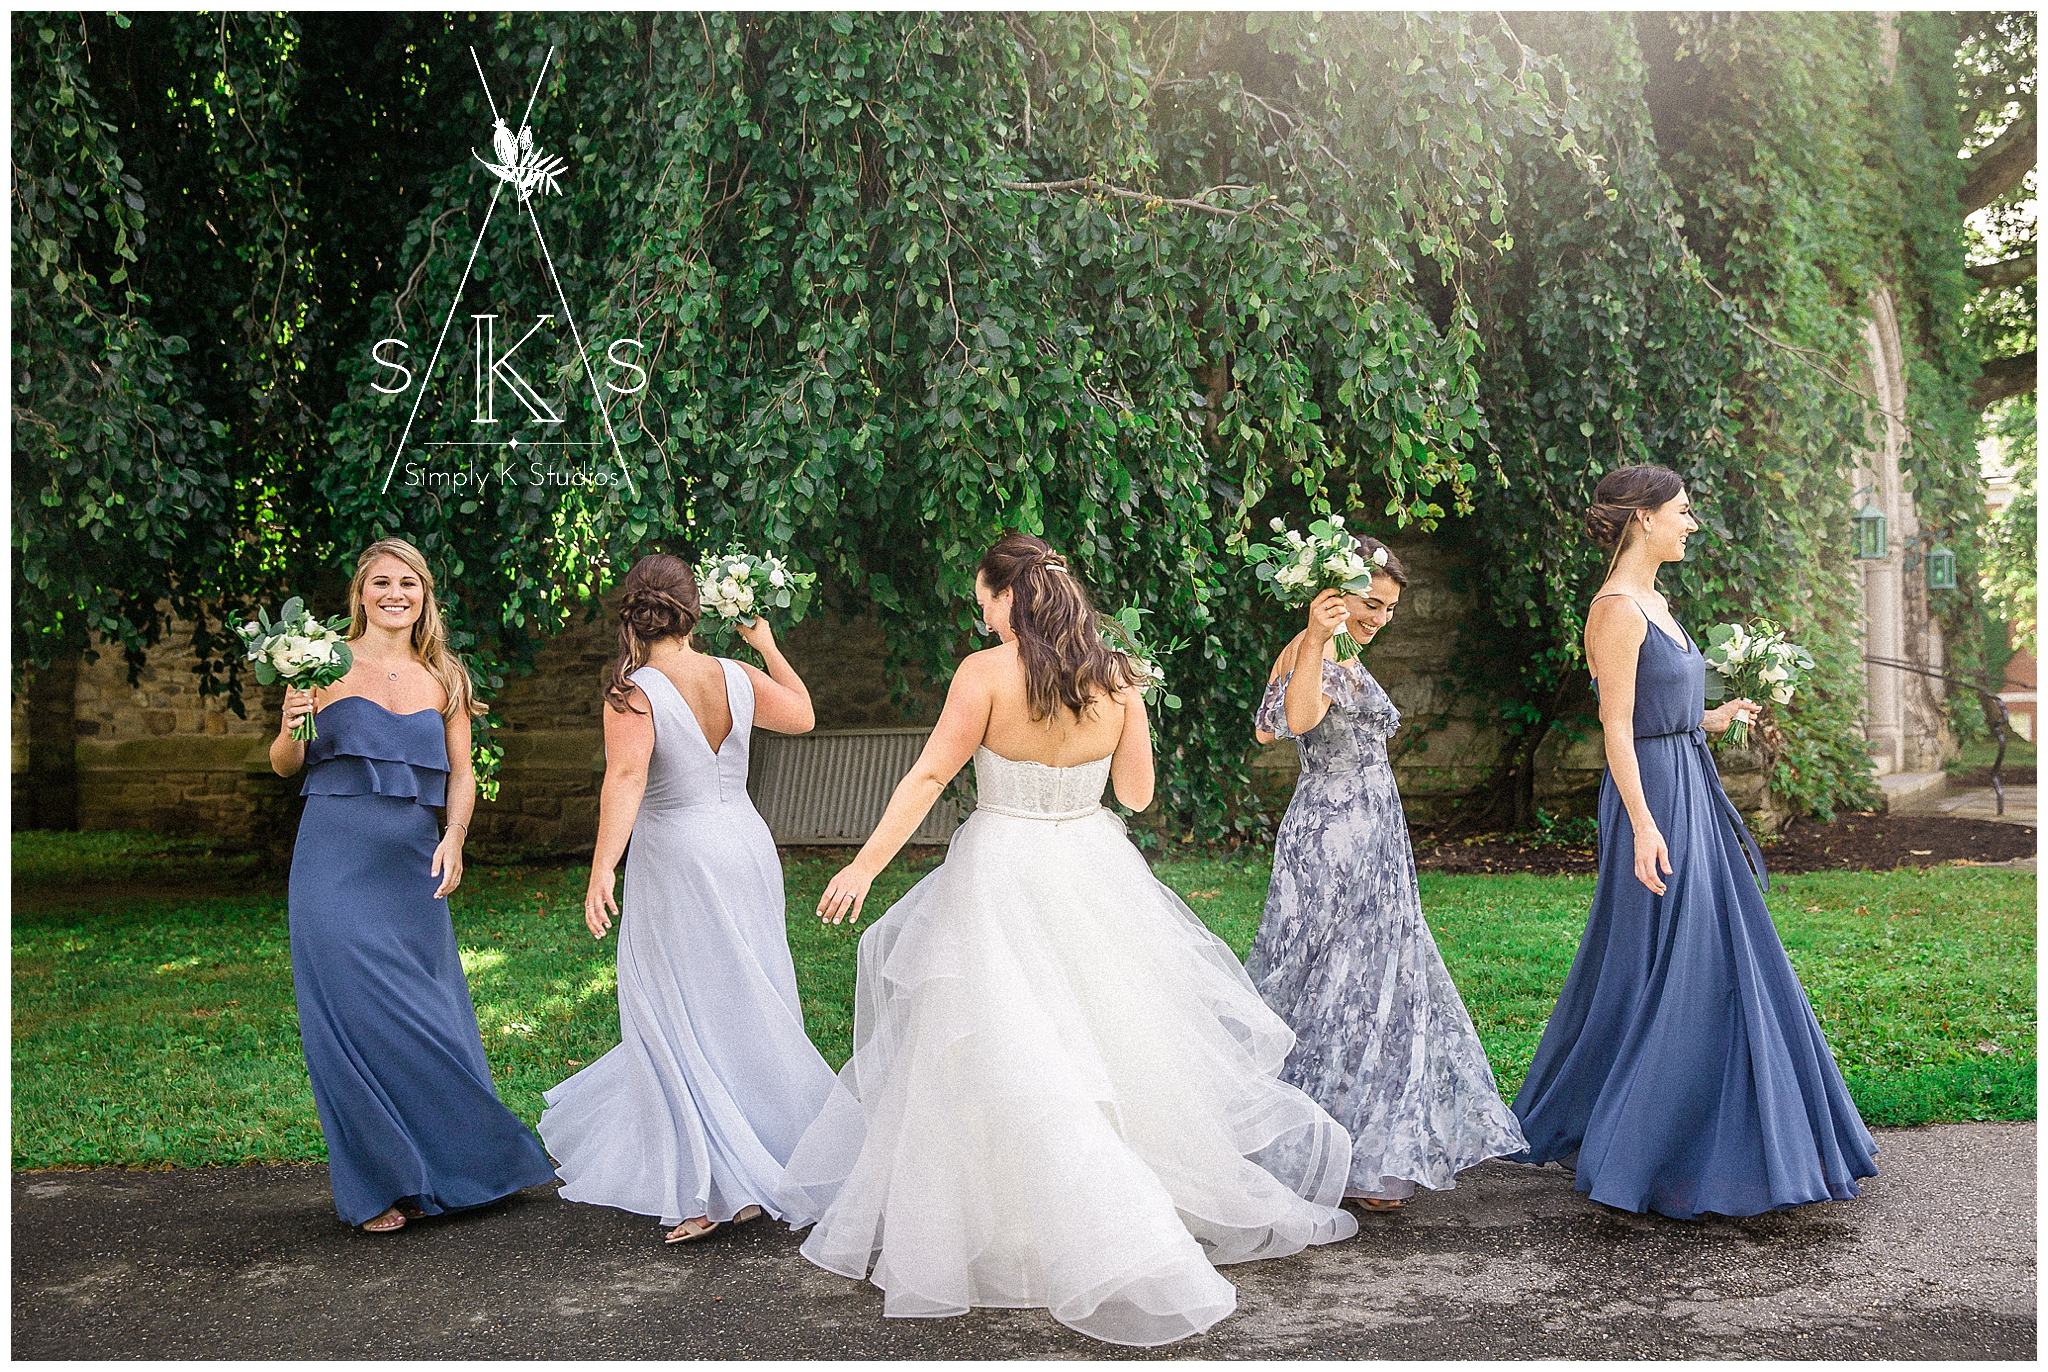 Bridesmaids twirling in their dresses